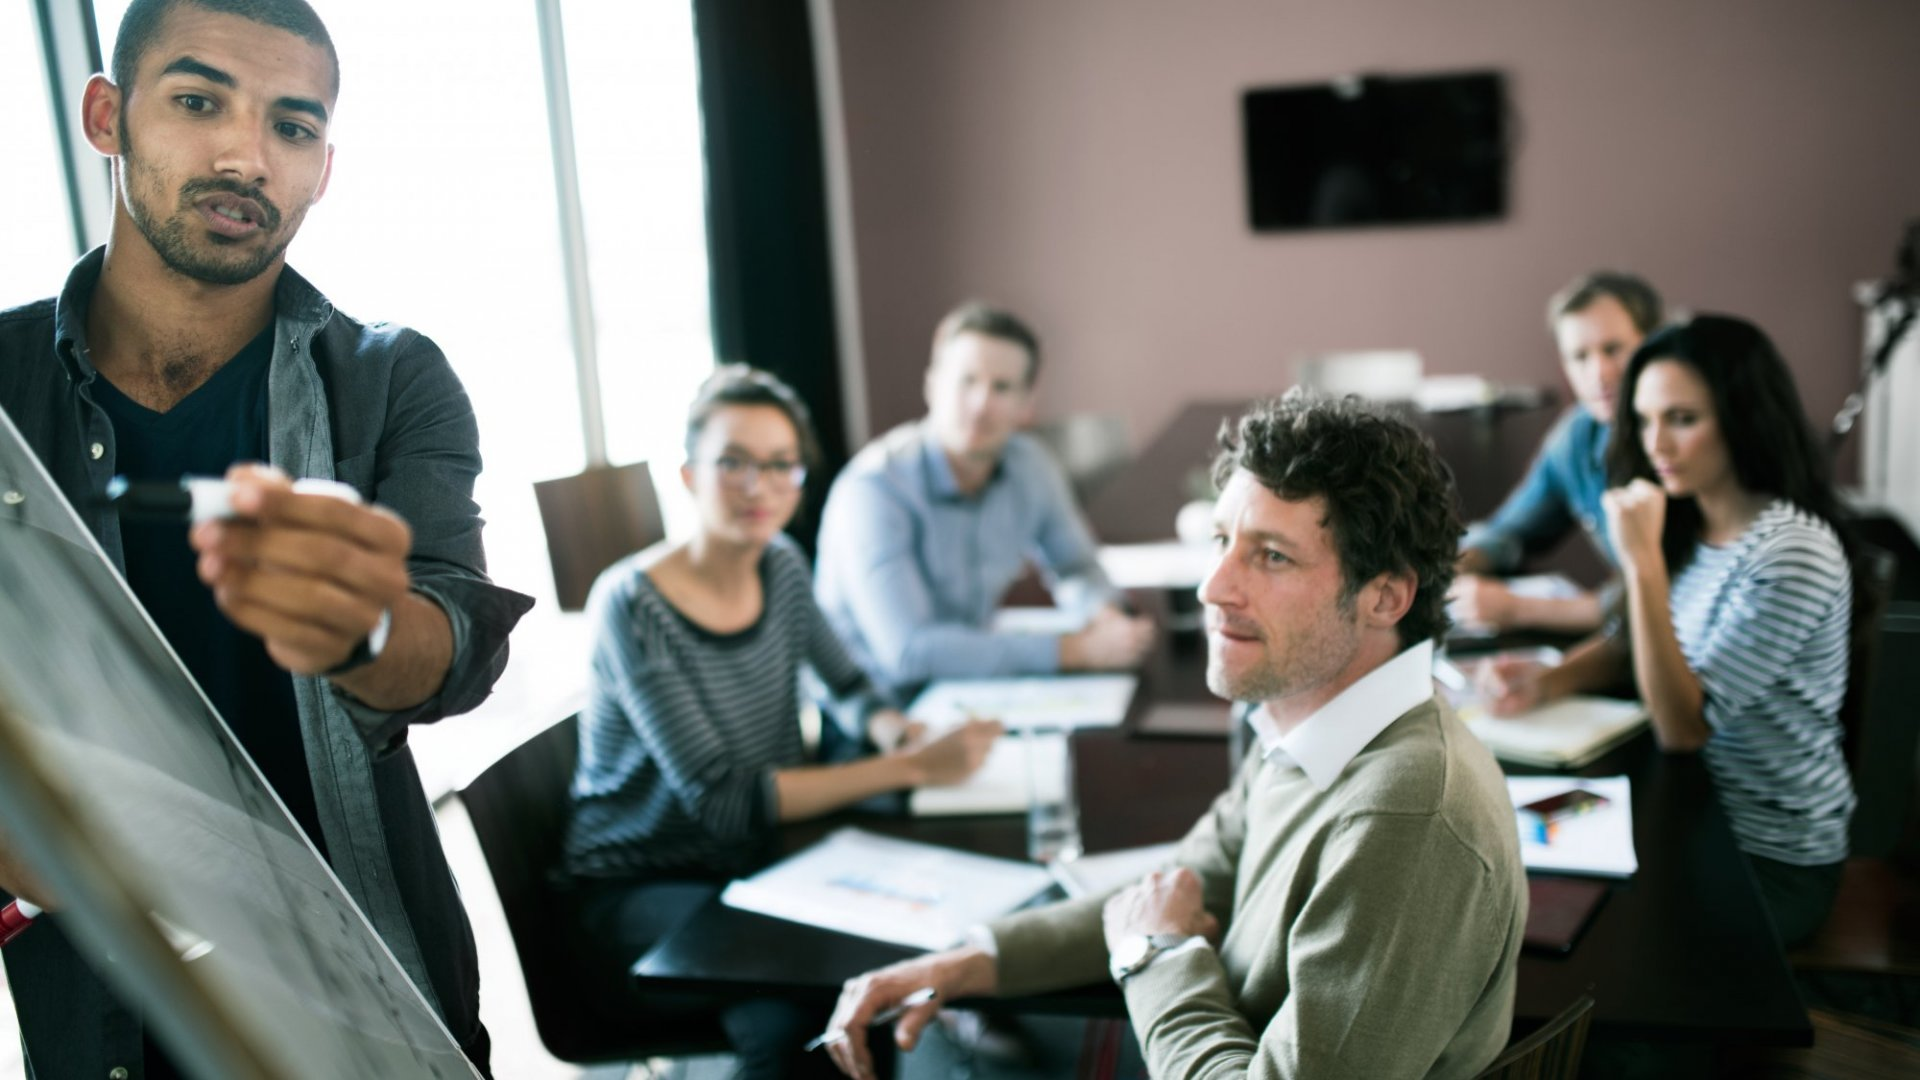 5 Times a Small Business Should Turn Down a Client